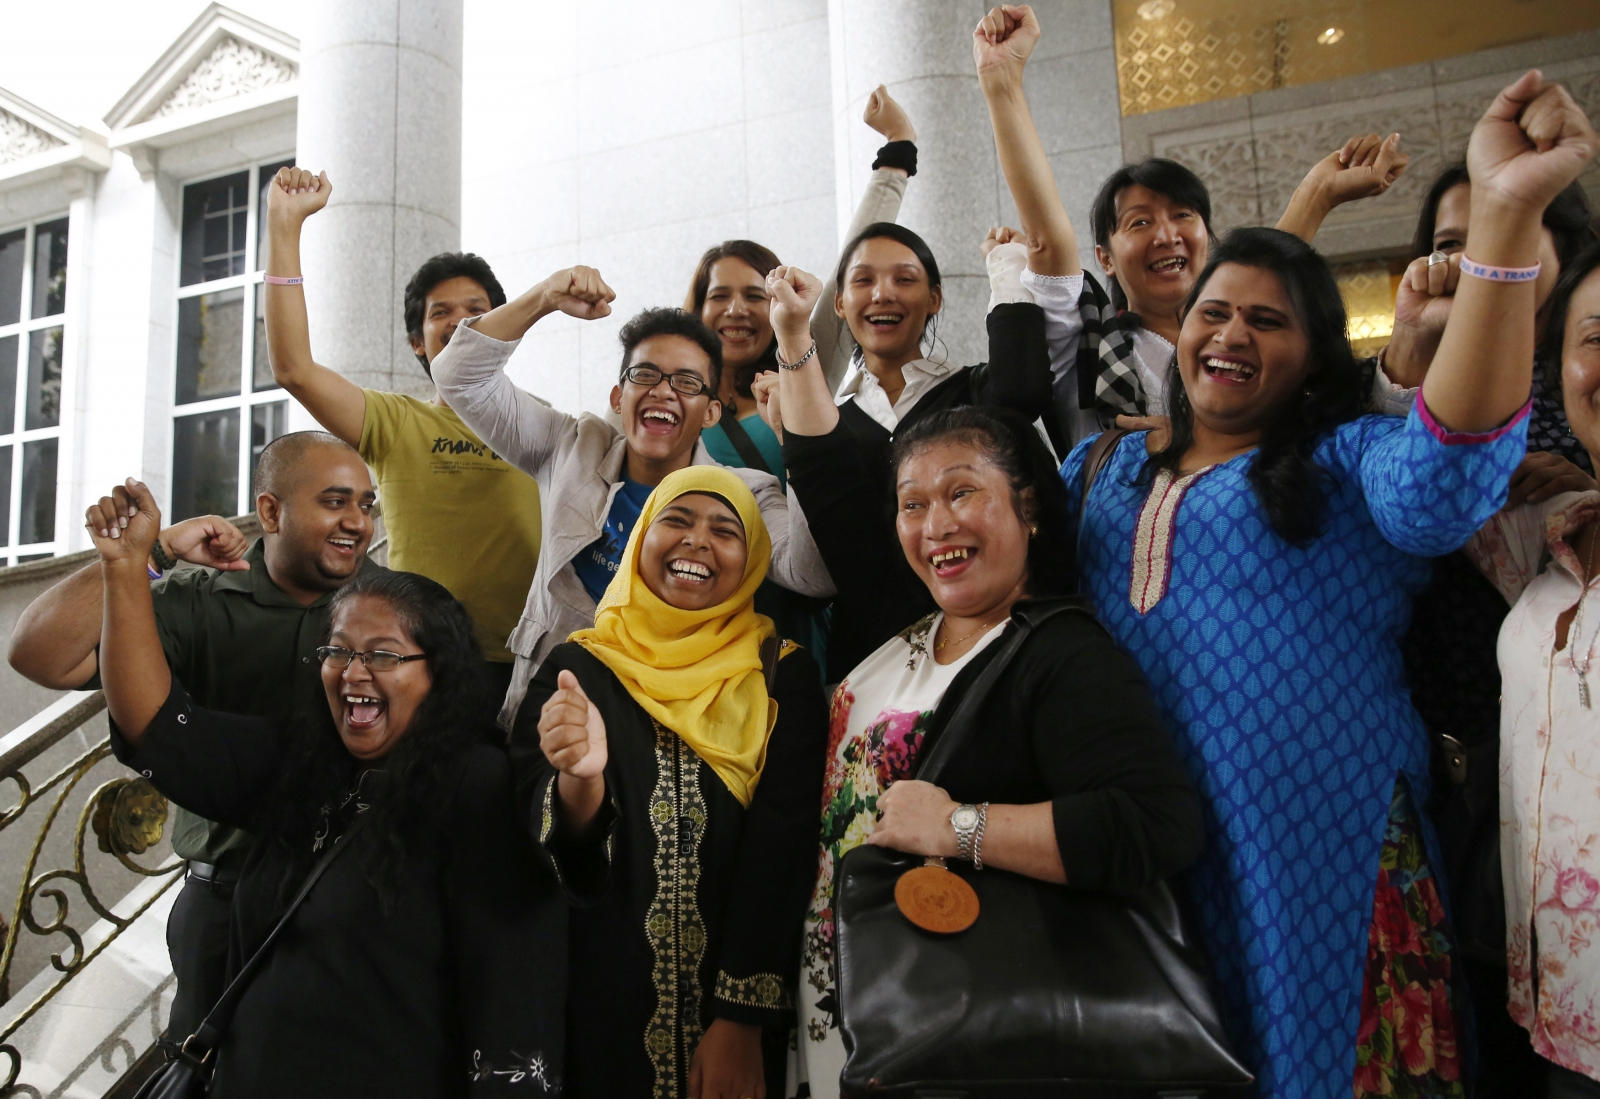 Activists celebrate overturning a sharia law against cross-dressing at the Appeals Court in the Palace of Justice in Putrajaya November 7, 2014